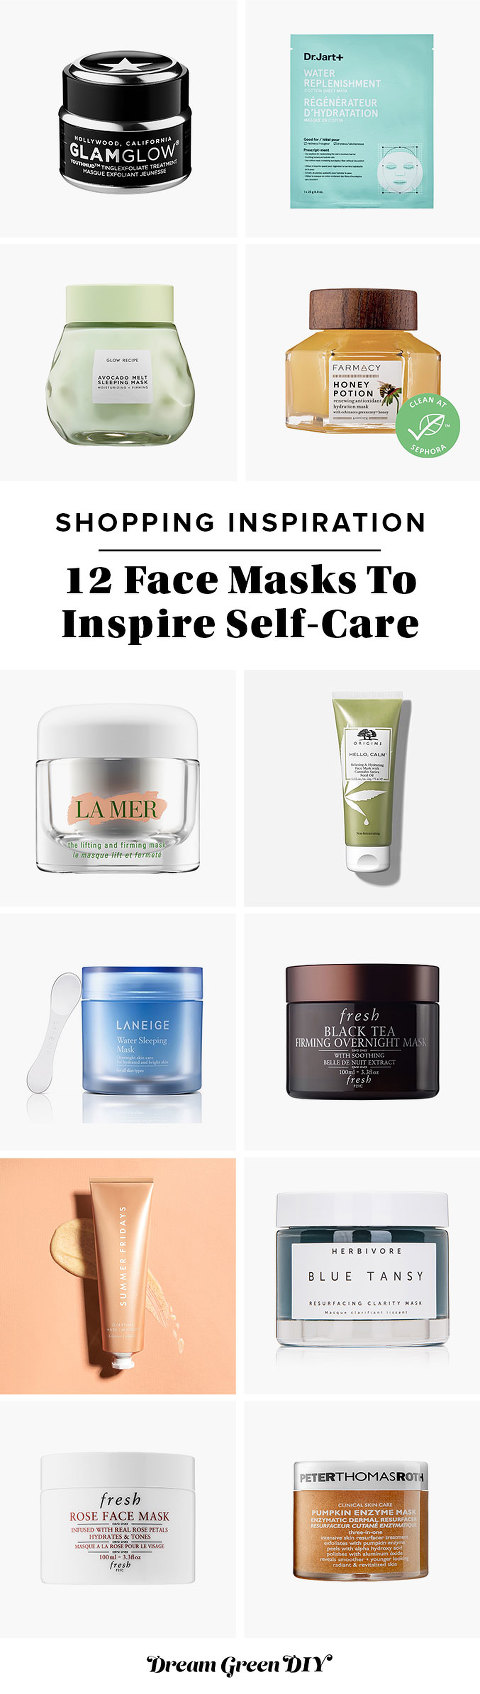 12 Face Masks To Inspire Self-Care